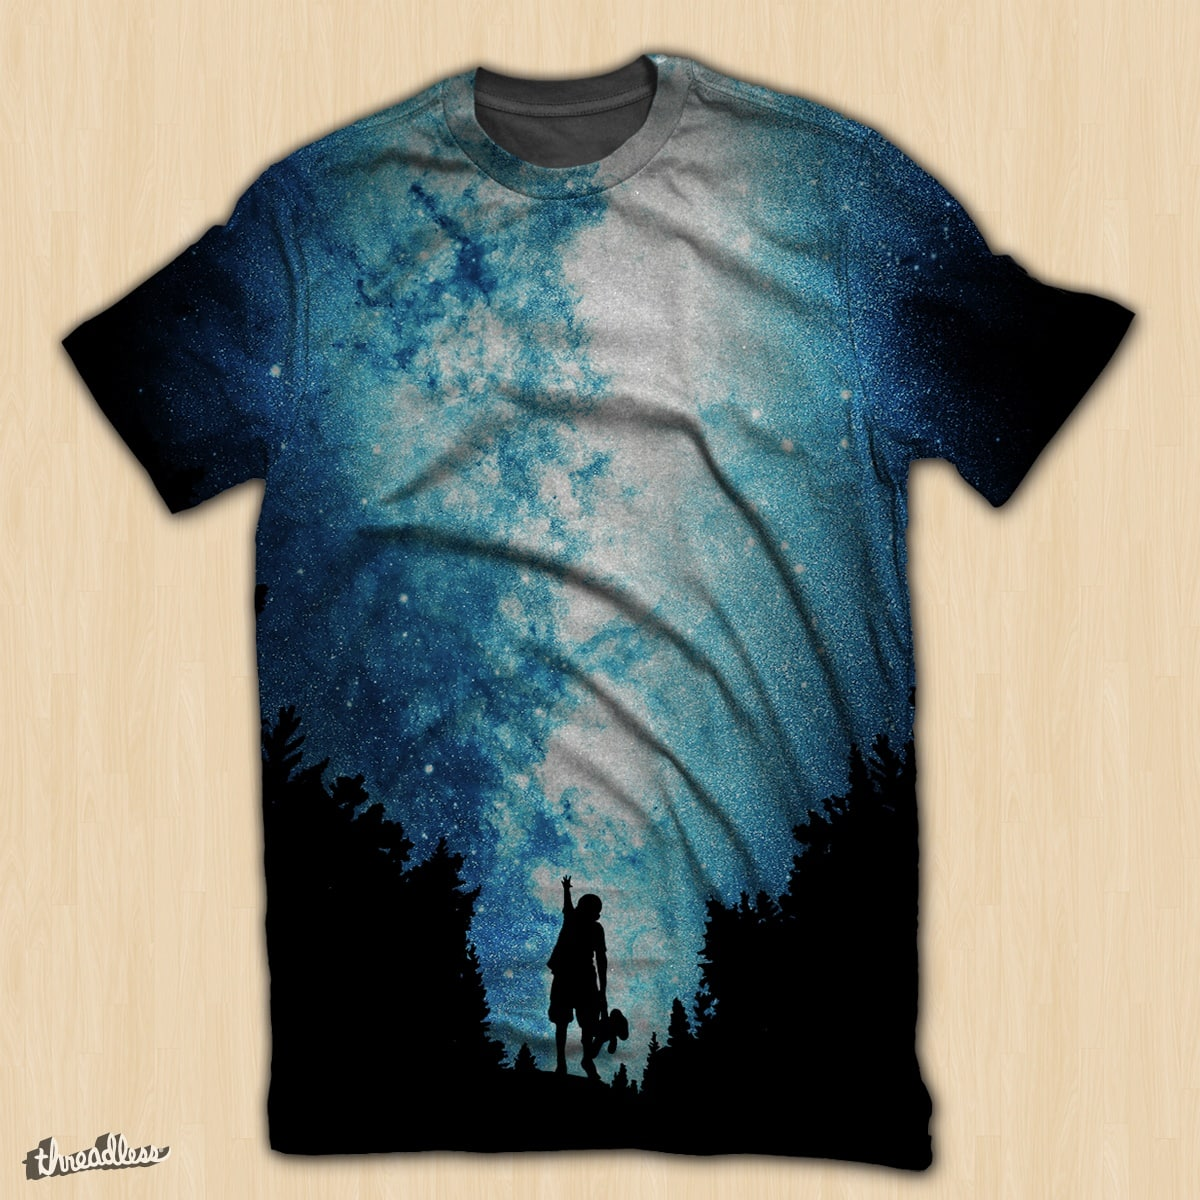 Reach For The Stars by MarkkoHellat on Threadless